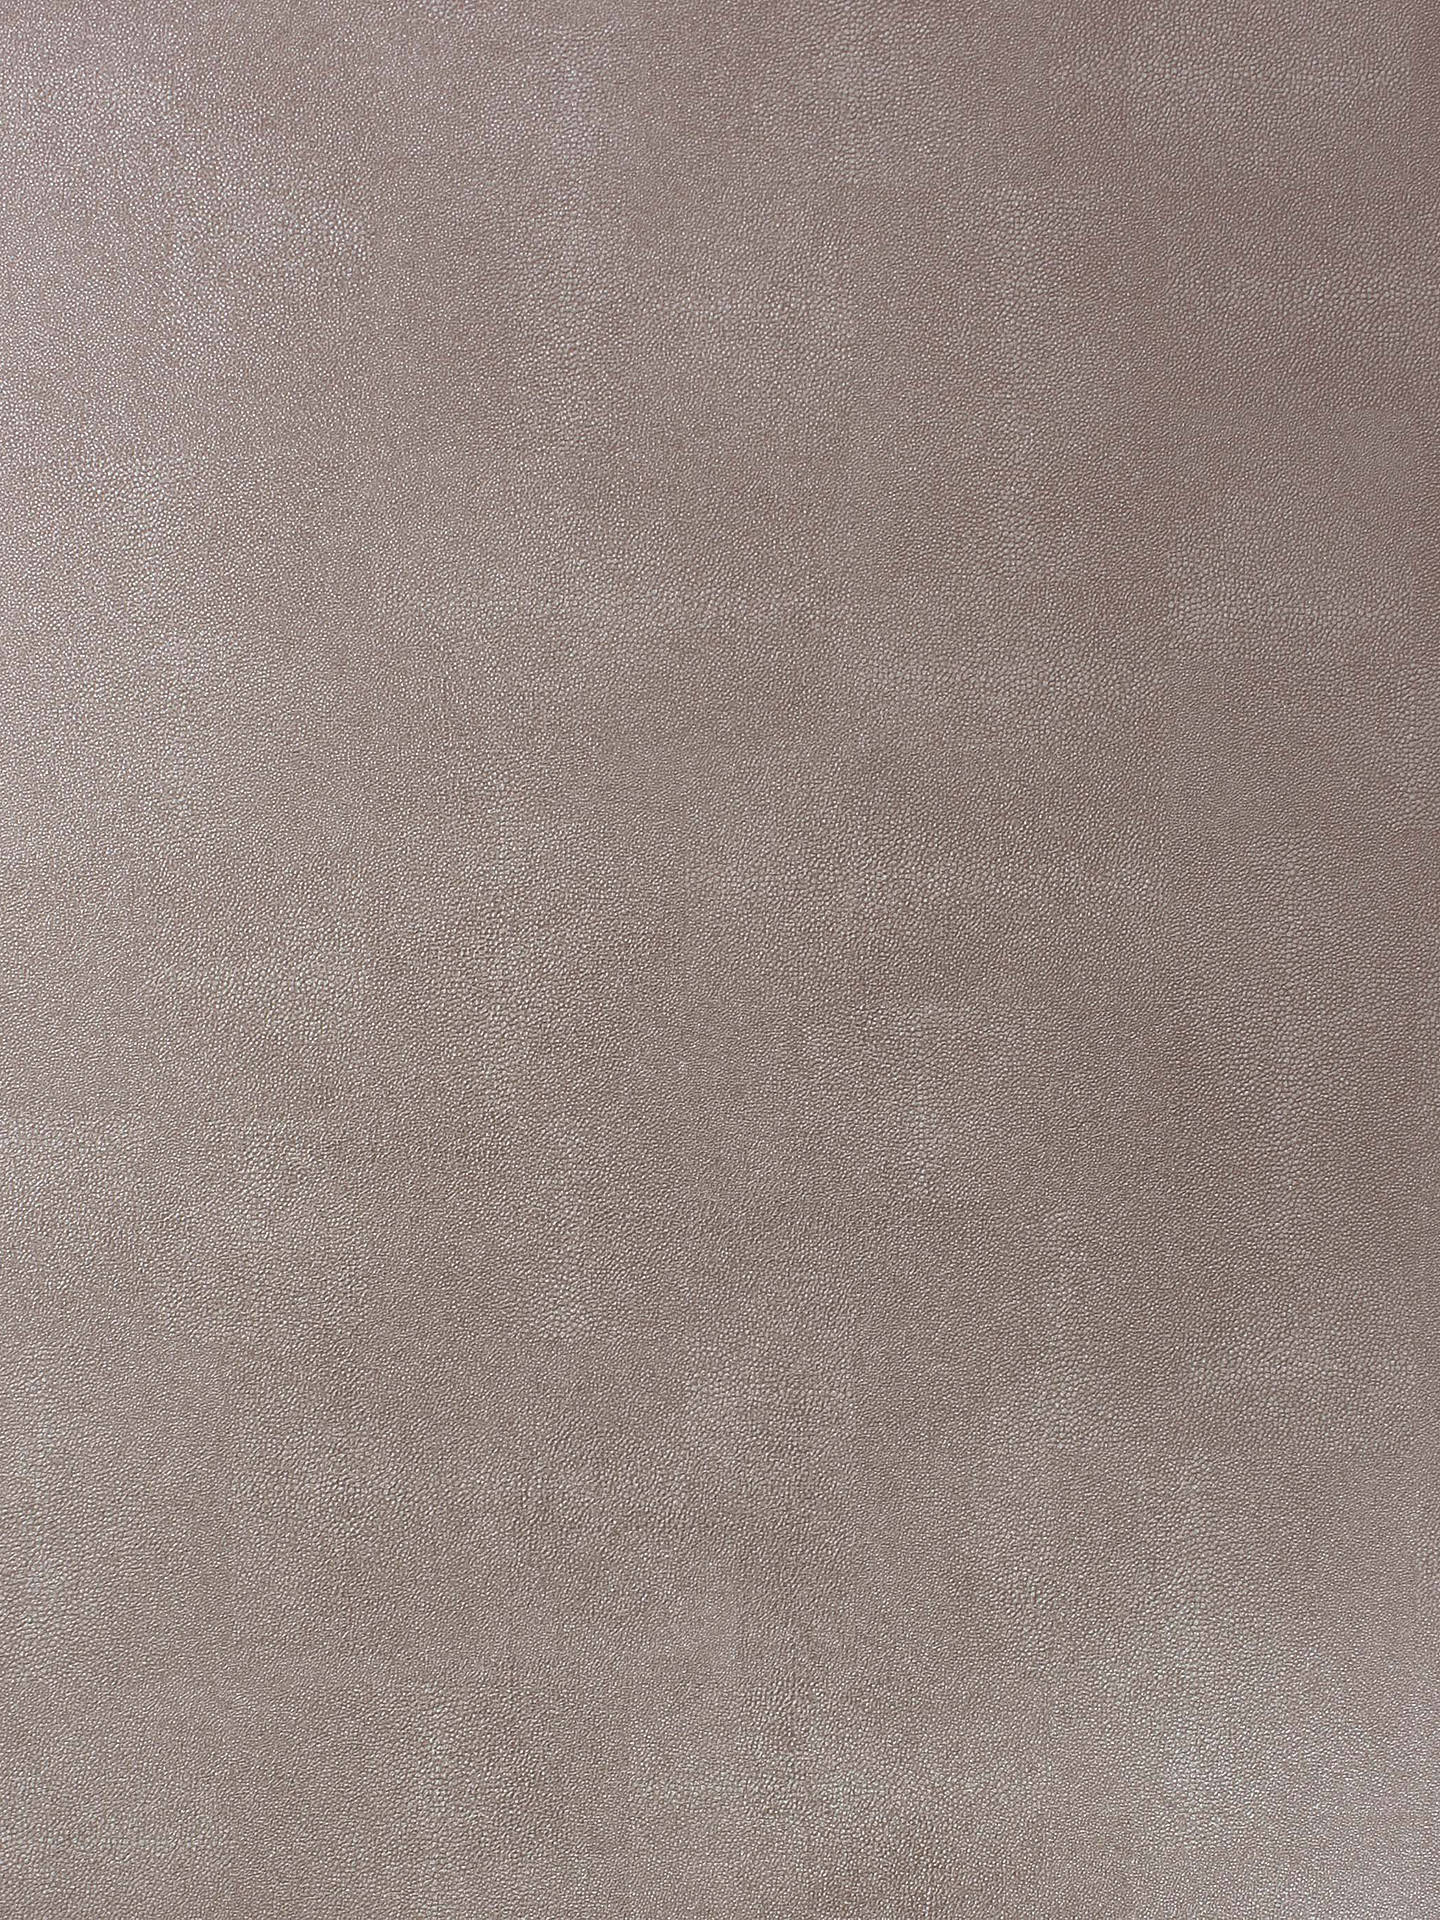 Buy Osborne & Little Zingrina Wallpaper, Rose Gold W6582-01 Online at johnlewis.com